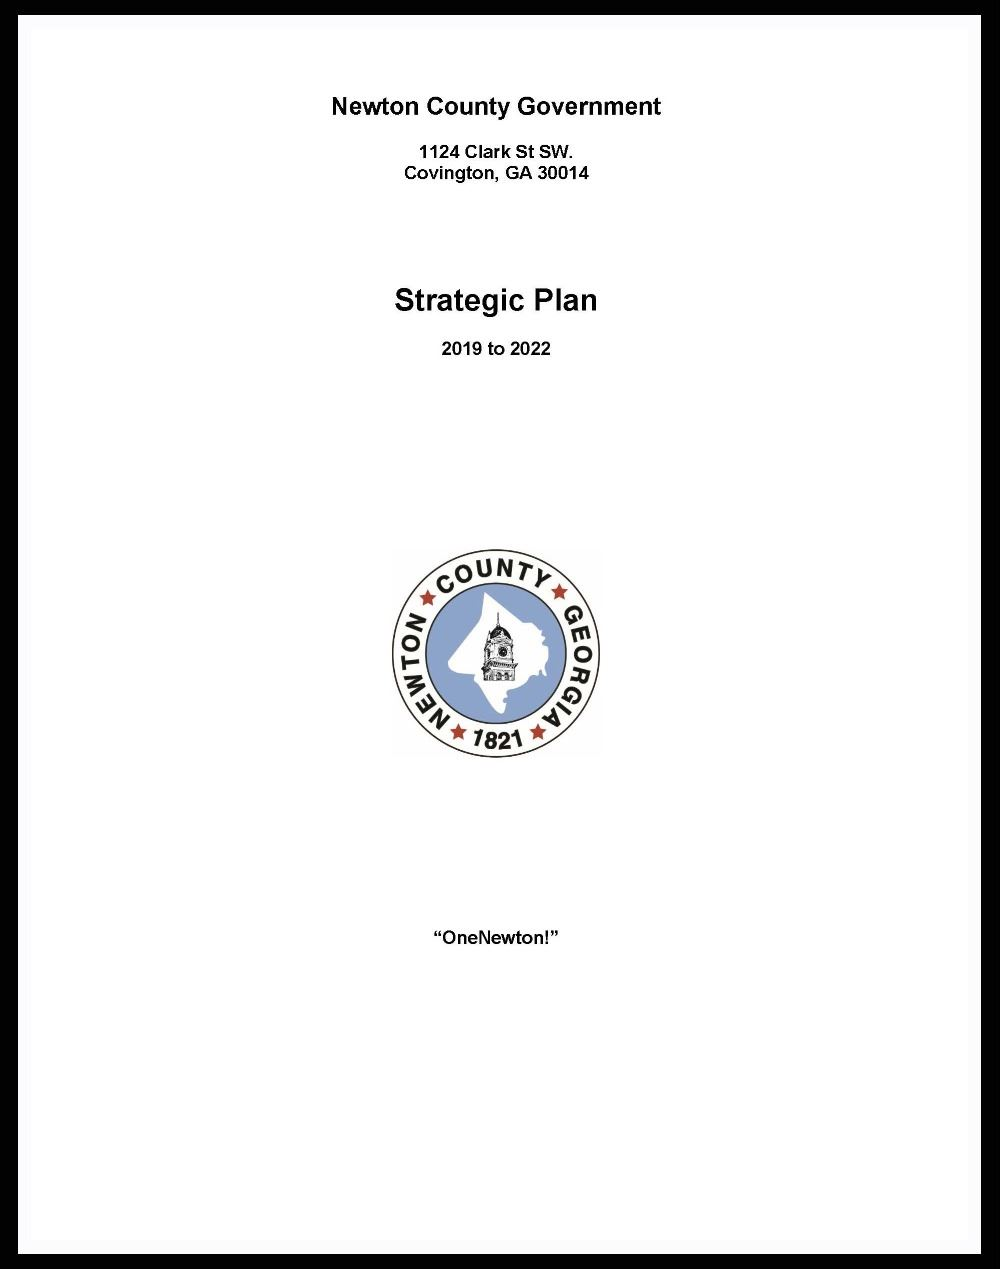 Newton County-Final Strategic Plan for the BOC page 1 border